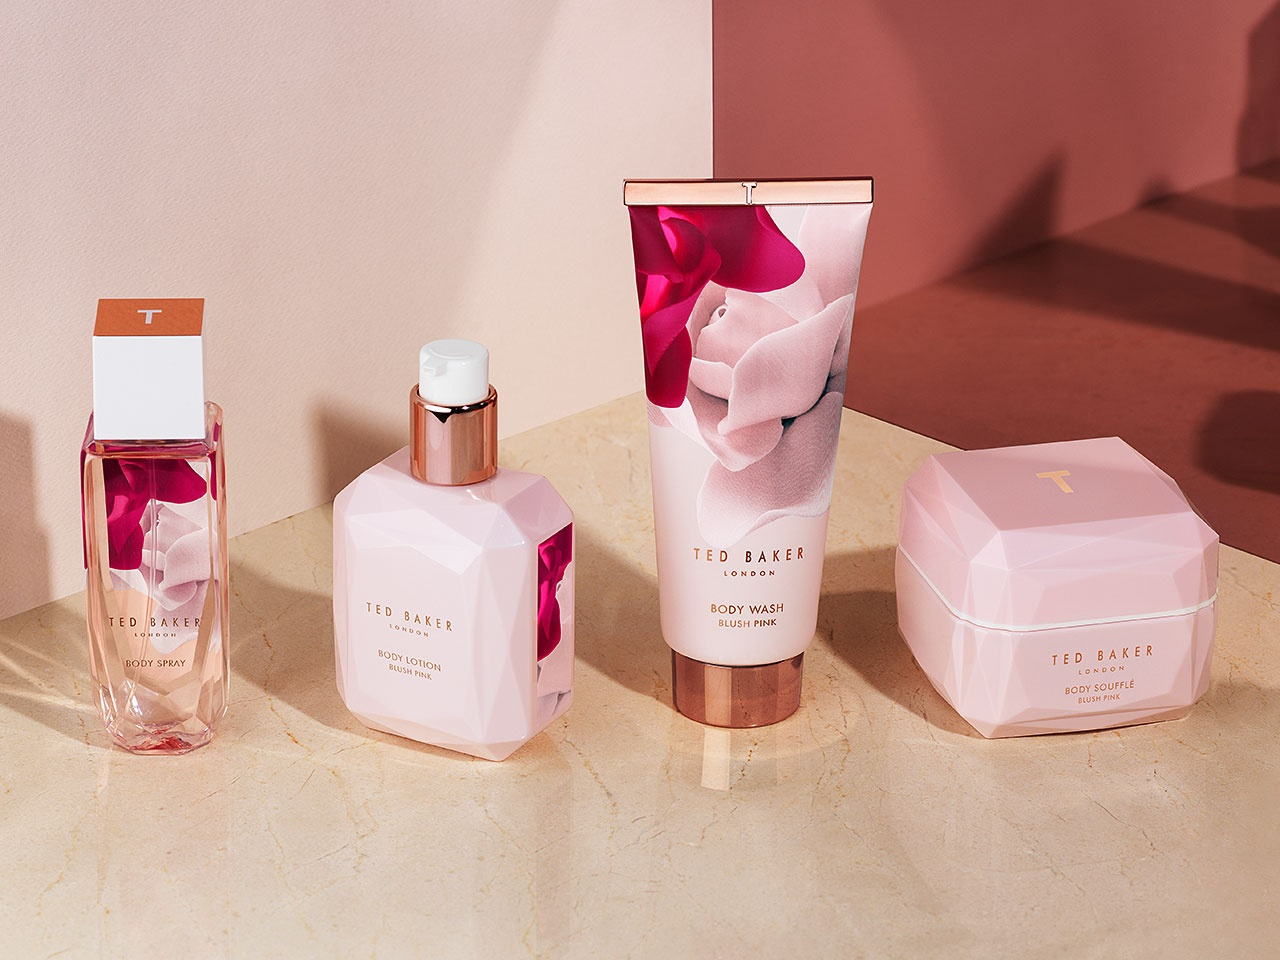 3ad2743bb9e Ted Baker Porcelain Rose Bath & Body Collection | KMI Brands